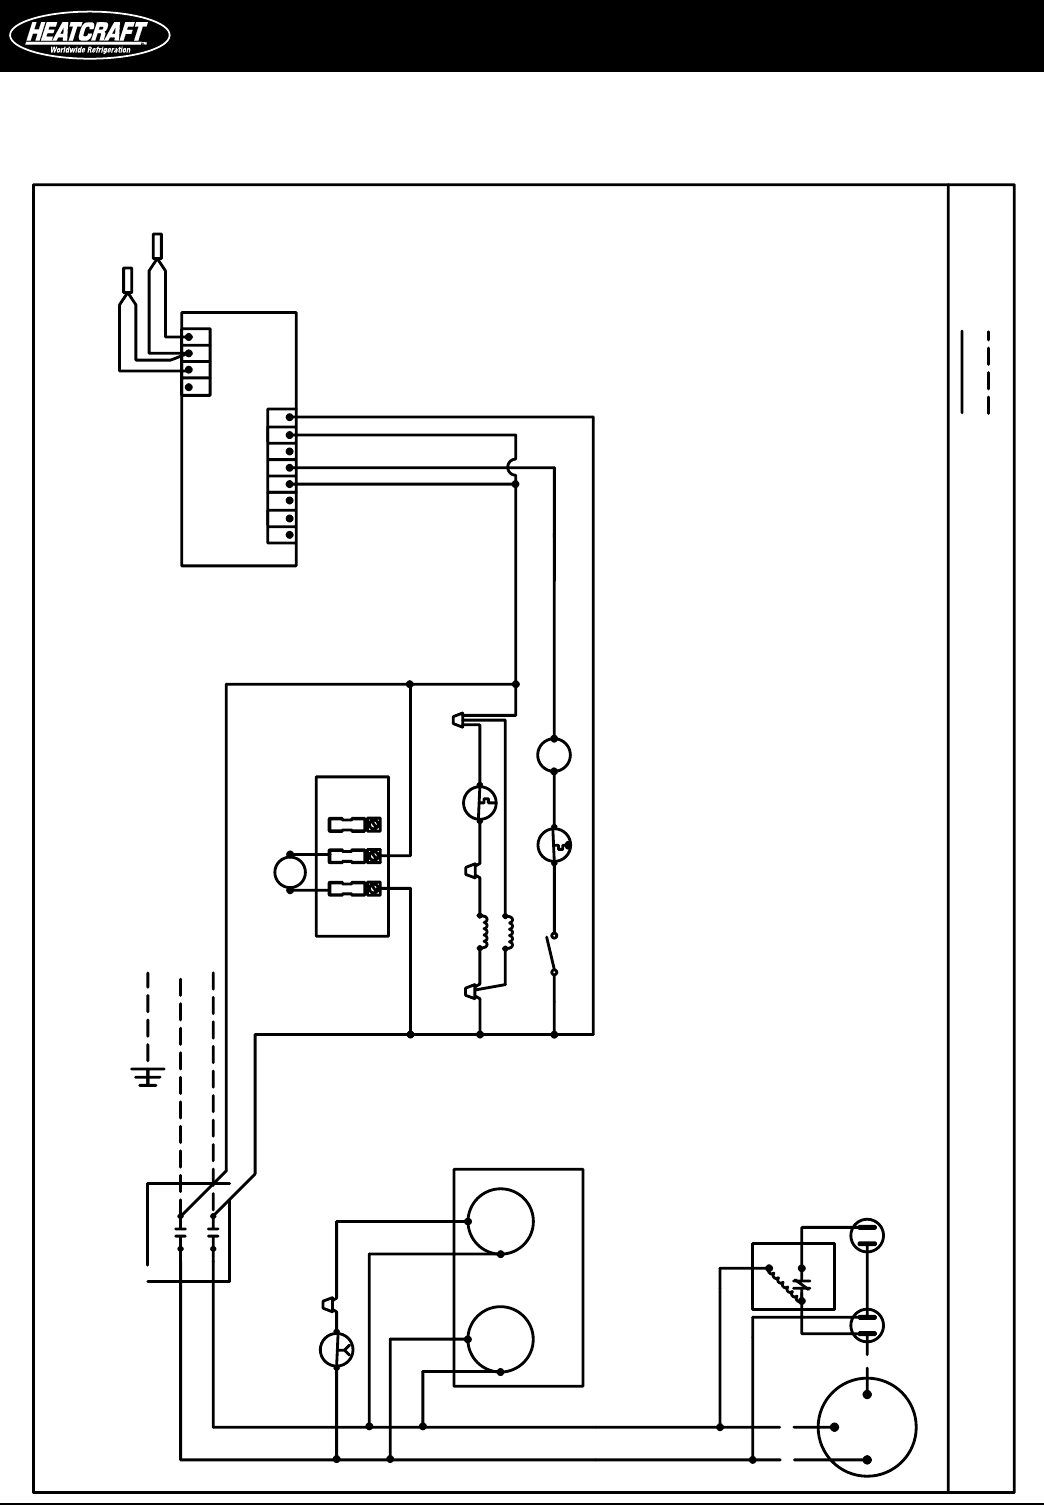 55587f91 c859 def4 0921 730c5709c050 bg10 page 16 of heatcraft refrigeration products refrigerator pro3 user bohn evaporator wiring diagram at soozxer.org